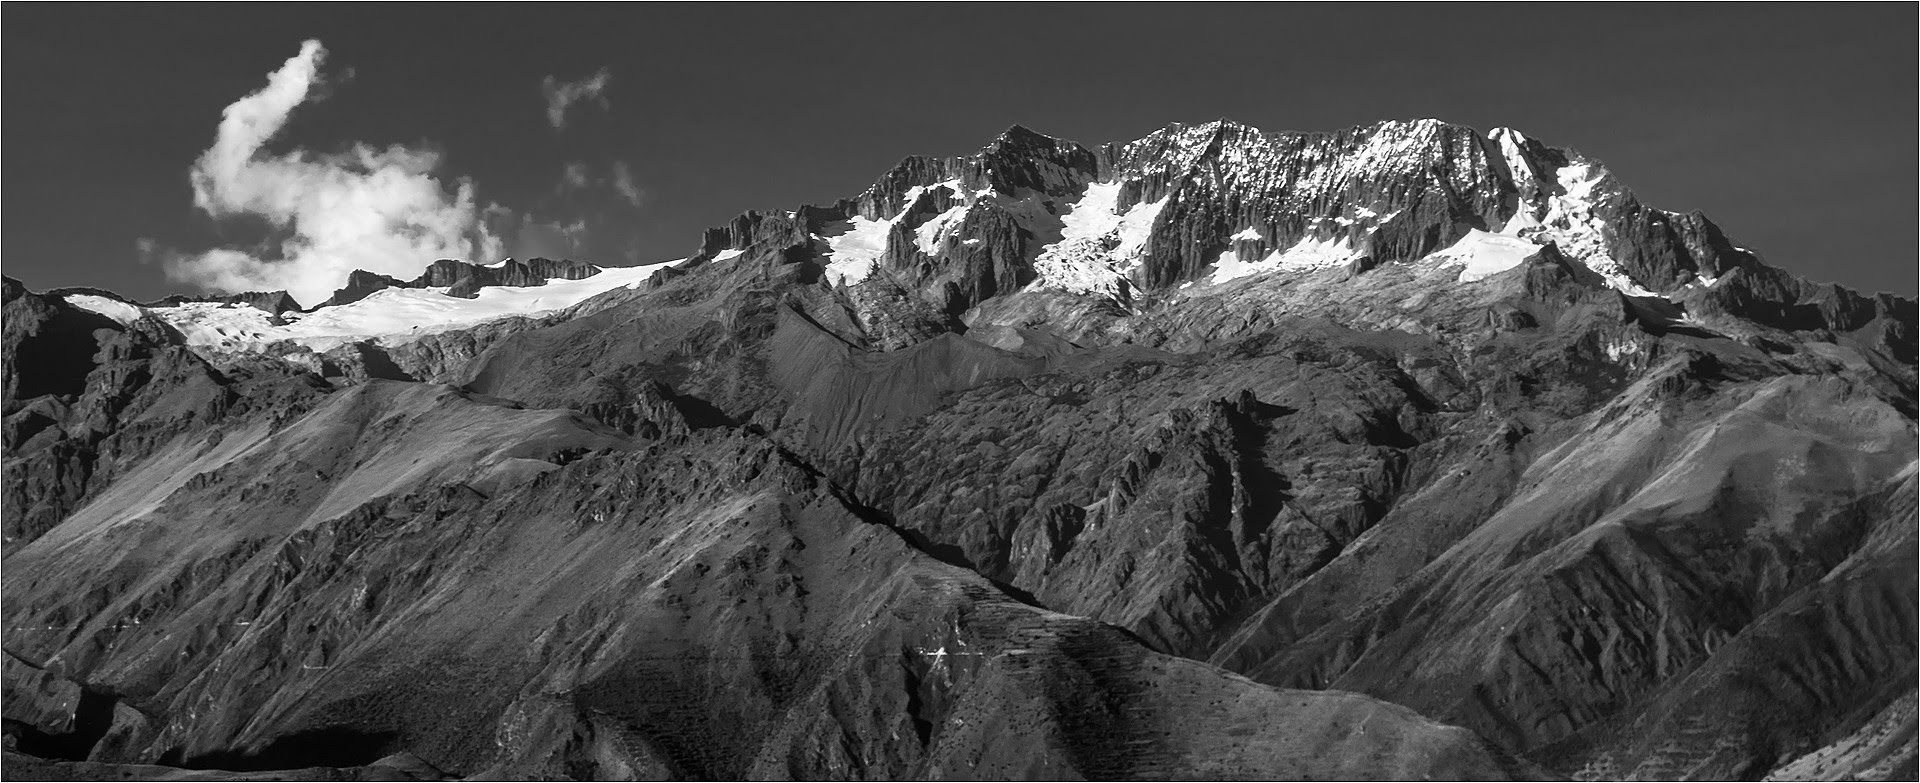 The top of the Andes Peru.jpg